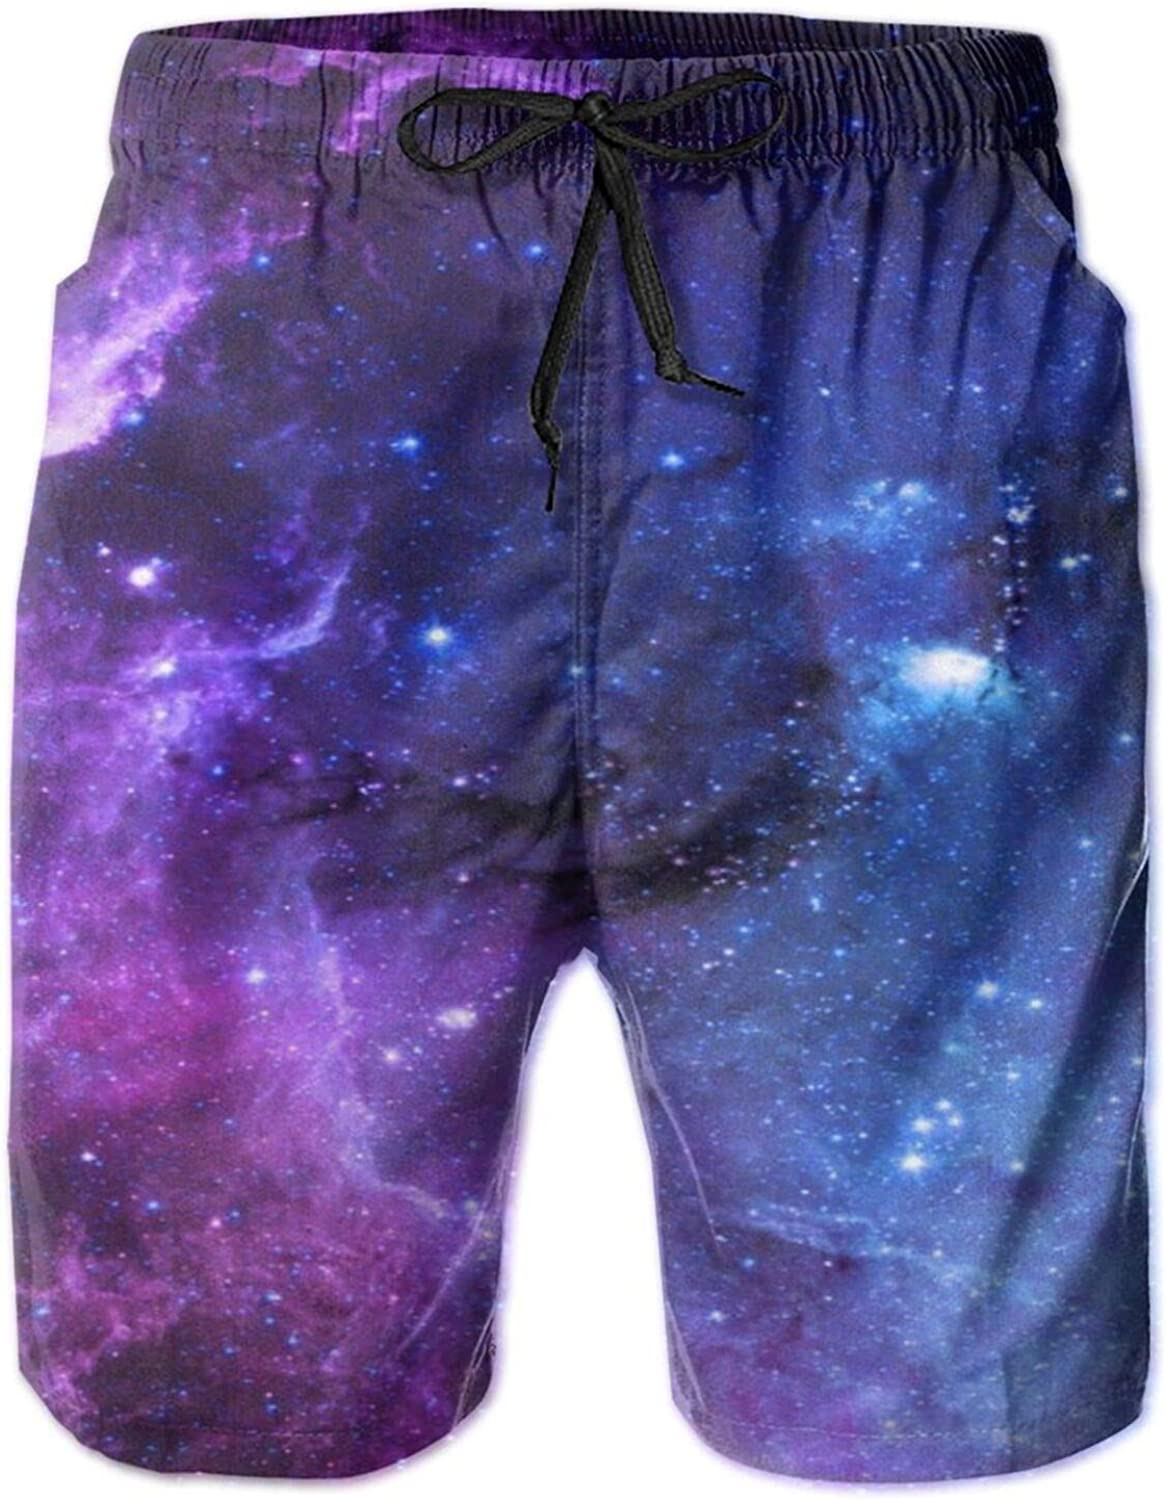 Yt92Pl@00 Mens 100% Polyester Space Star Ba Trunks outlet Fashion Swim New sales